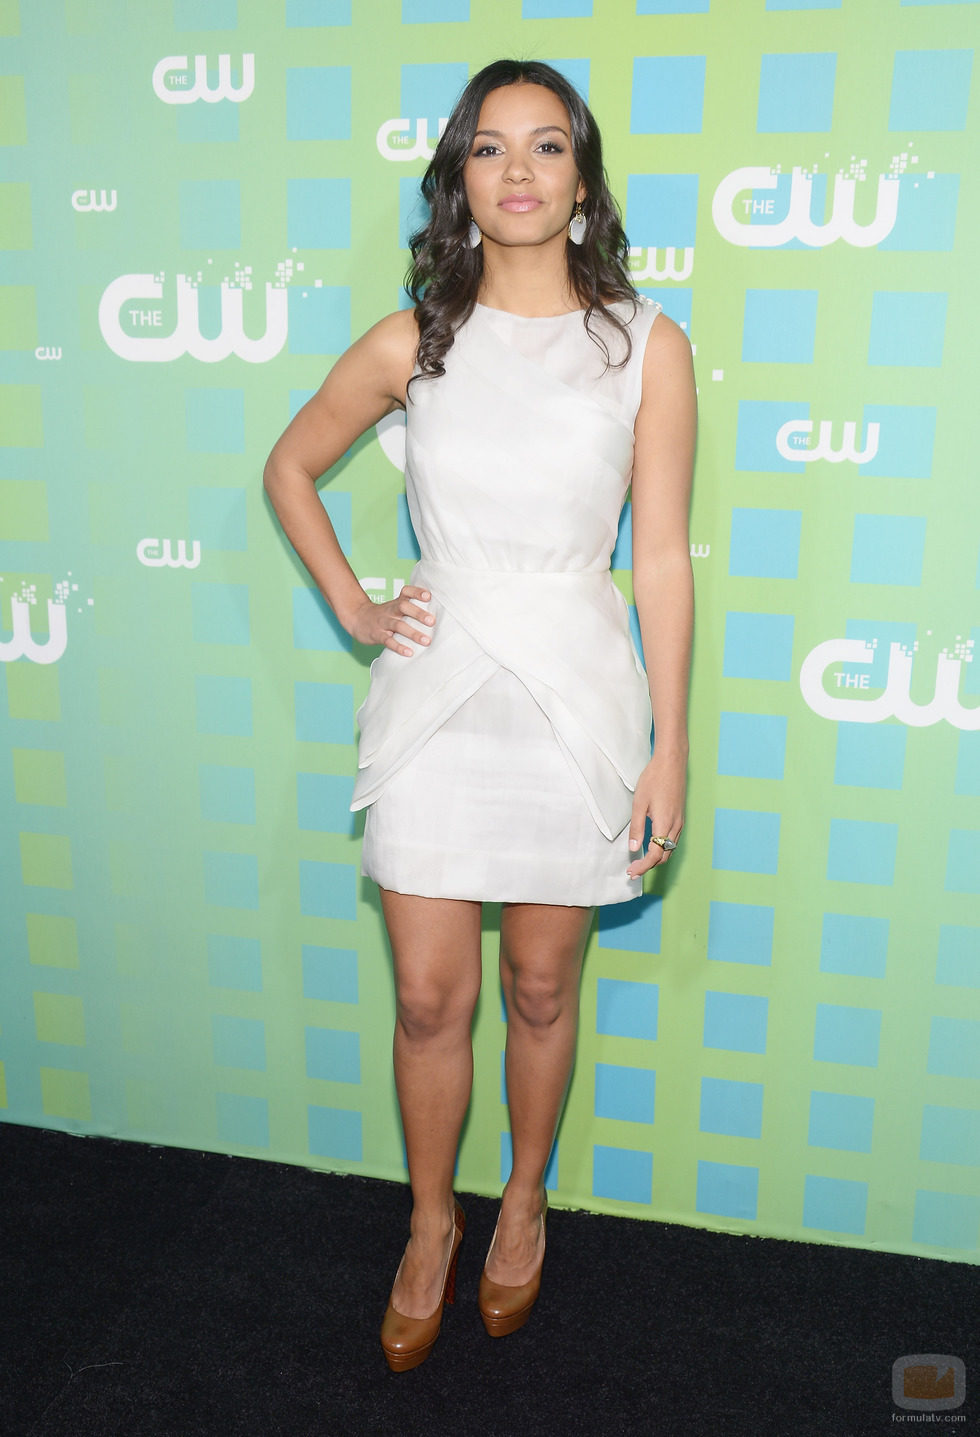 Jessica Lucas de 'Cult' en los Upfronts 2012 de The CW